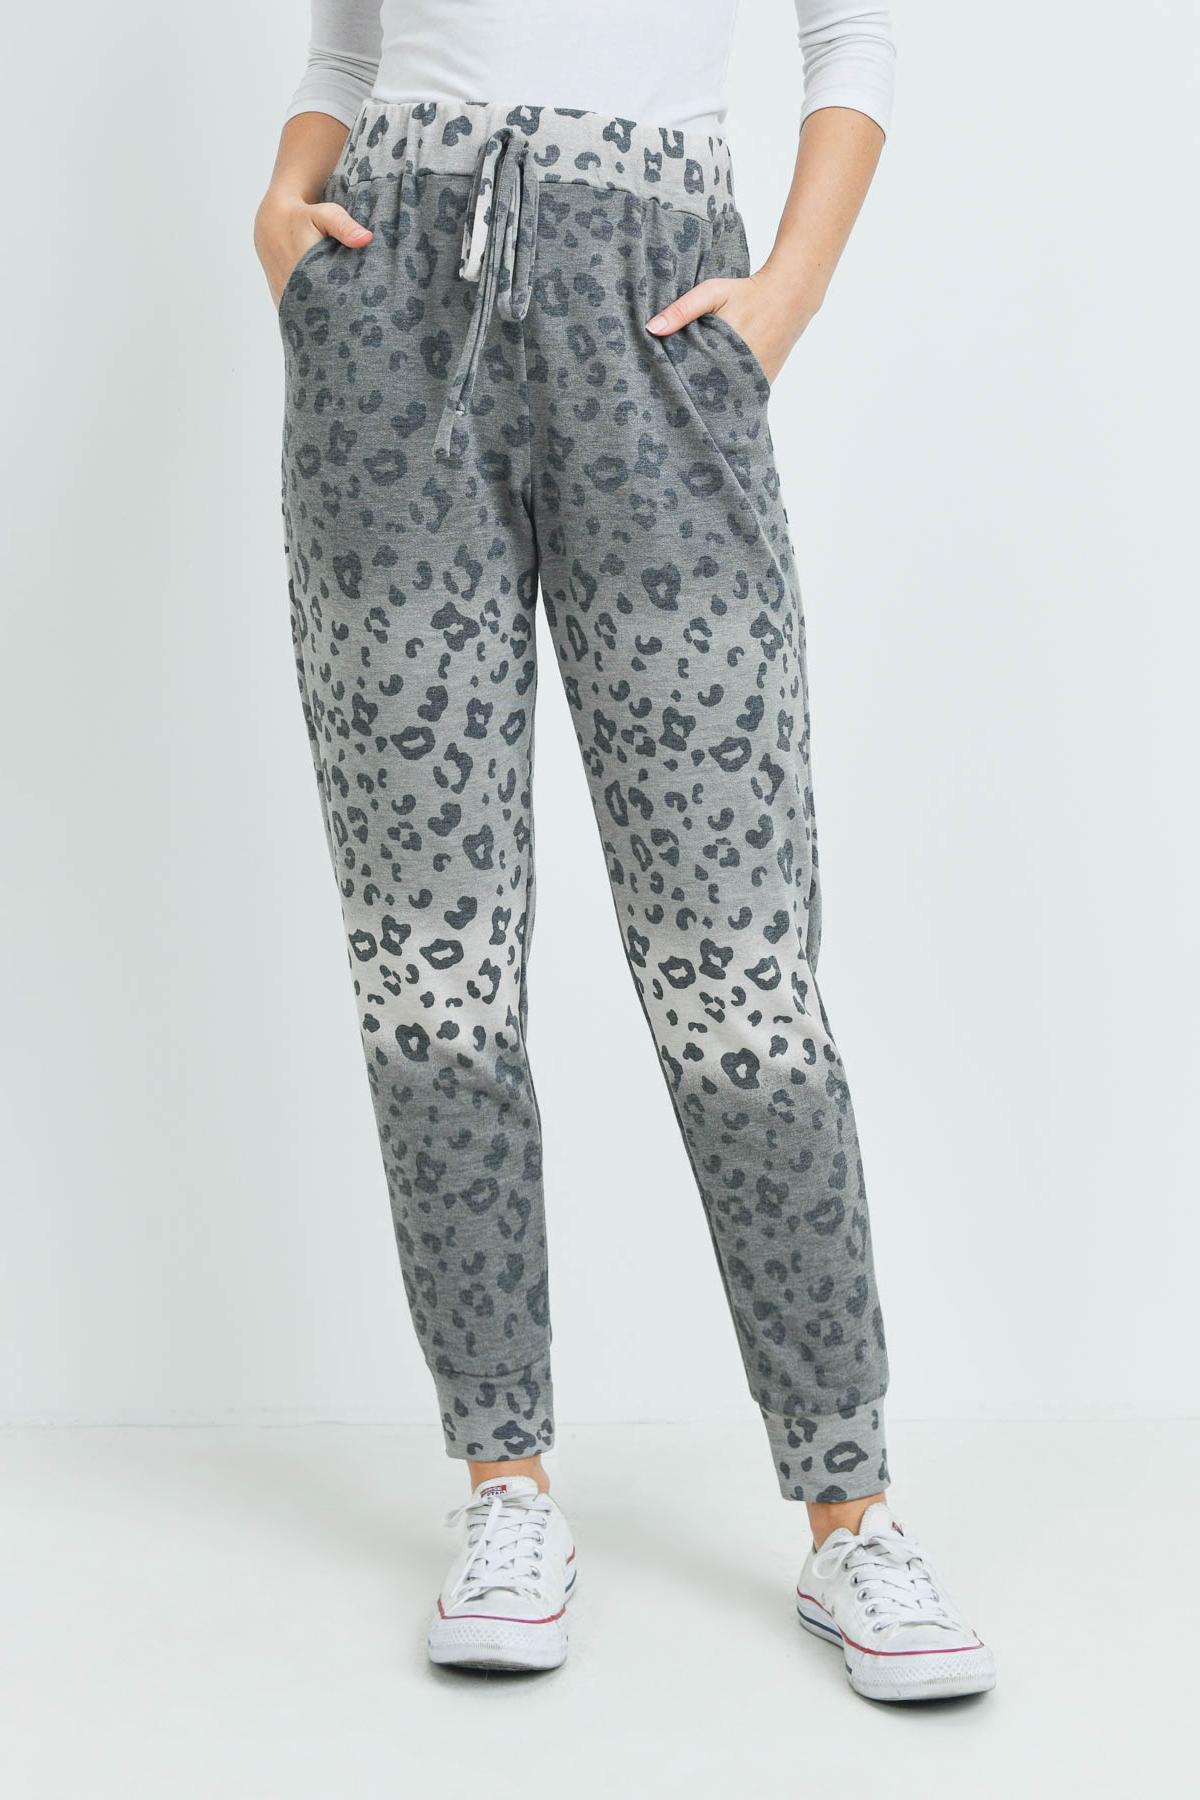 S5-10-4-PPP4069-GYBK - OMBRE LEOPARD PRINT JOGGER PANTS WITH SELF TIE- GREY/BLACK 1-2-2-2